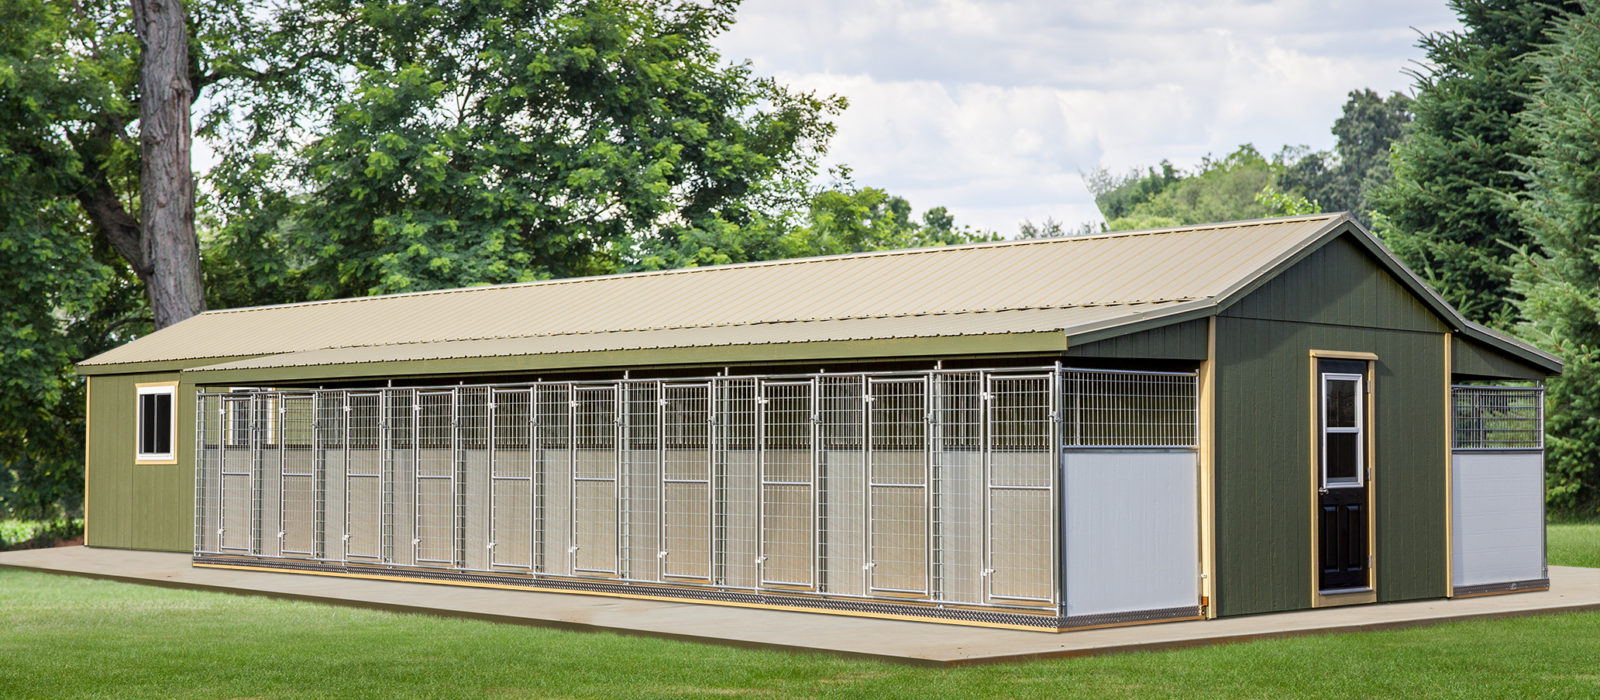 ofca back kennel